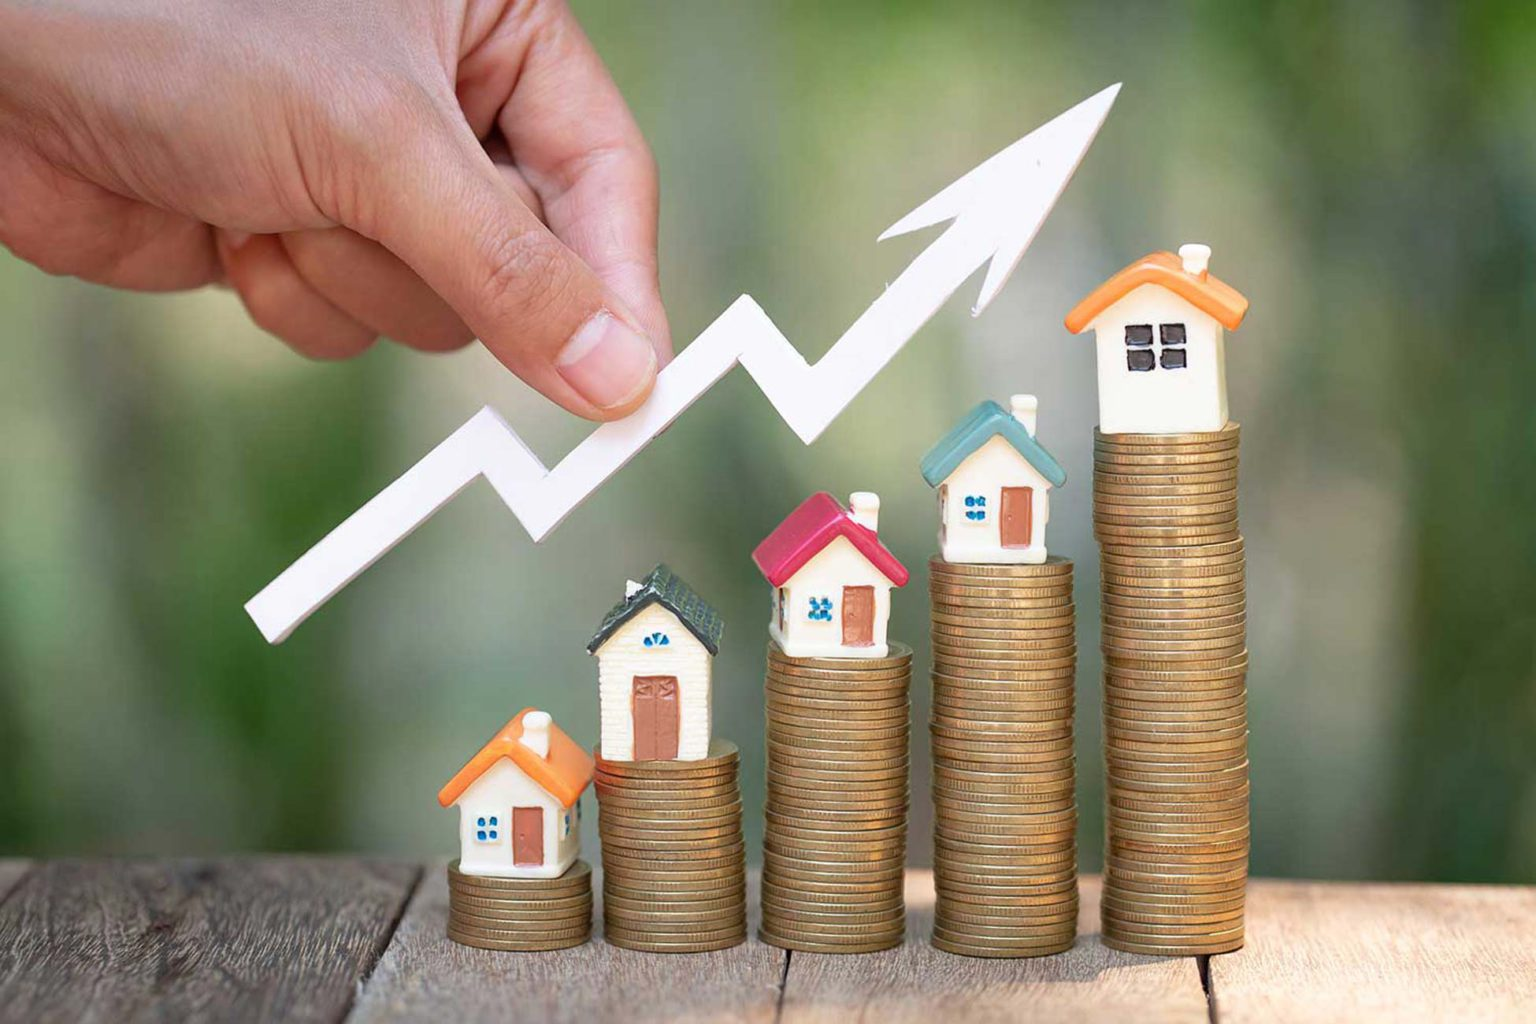 Investing In the Real Estate Market